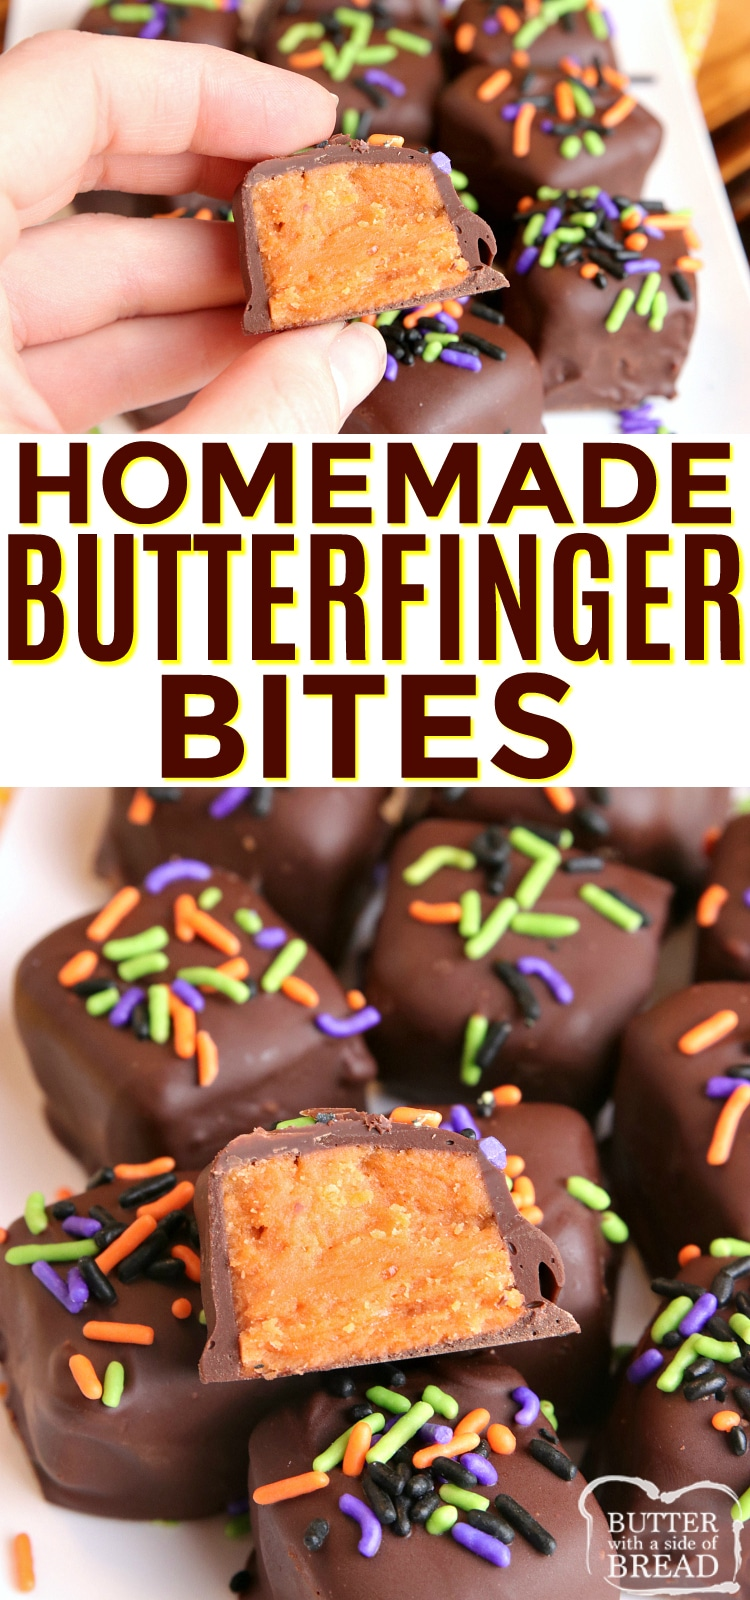 Homemade Butterfinger Bites are made with candy corn, peanut butter and chocolate. Miniature Butterfinger candy bars made in the microwave with only 3 ingredients!